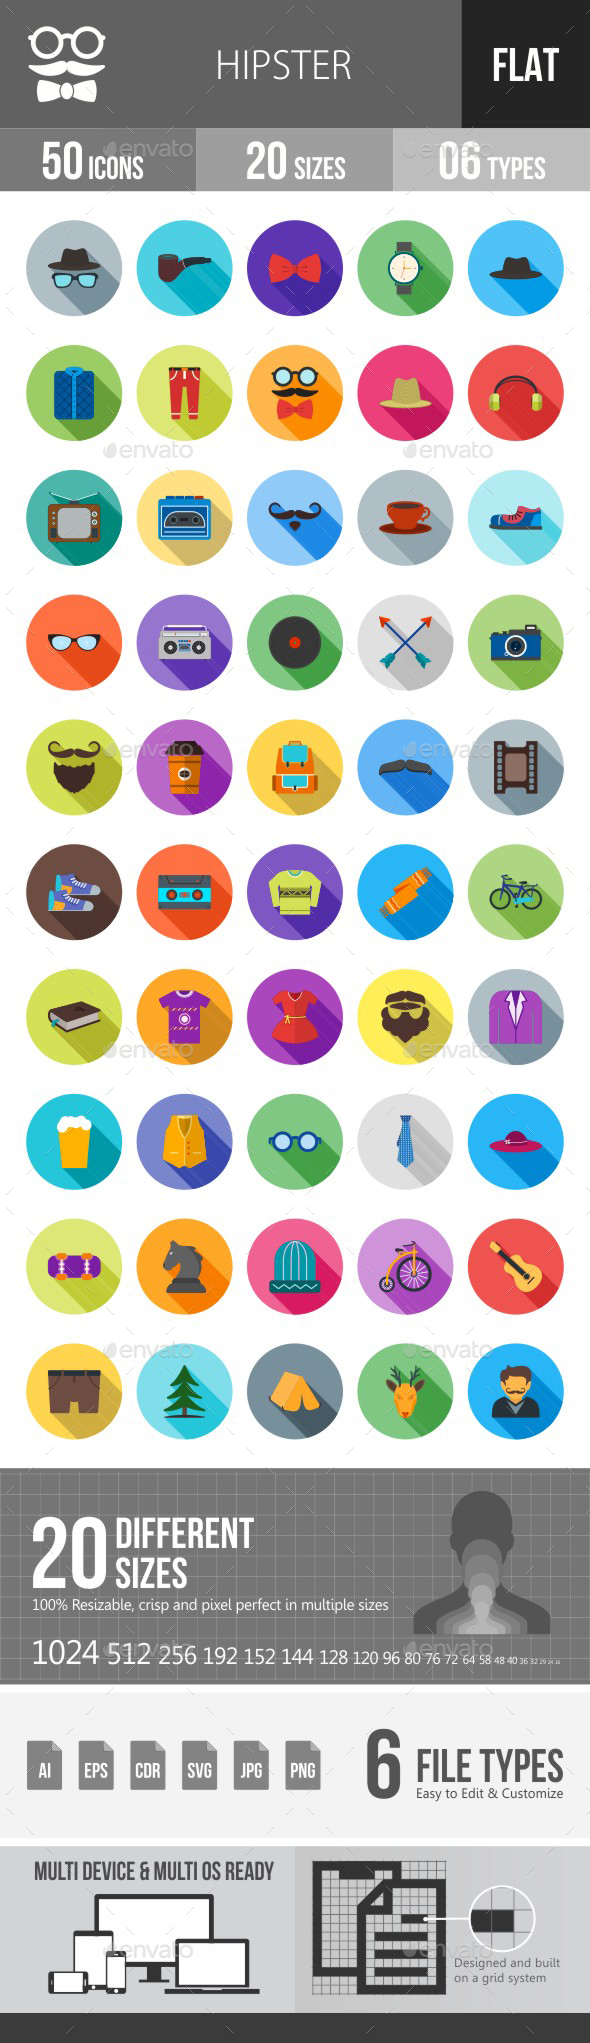 Hipster Flat Shadowed Icons - Icons